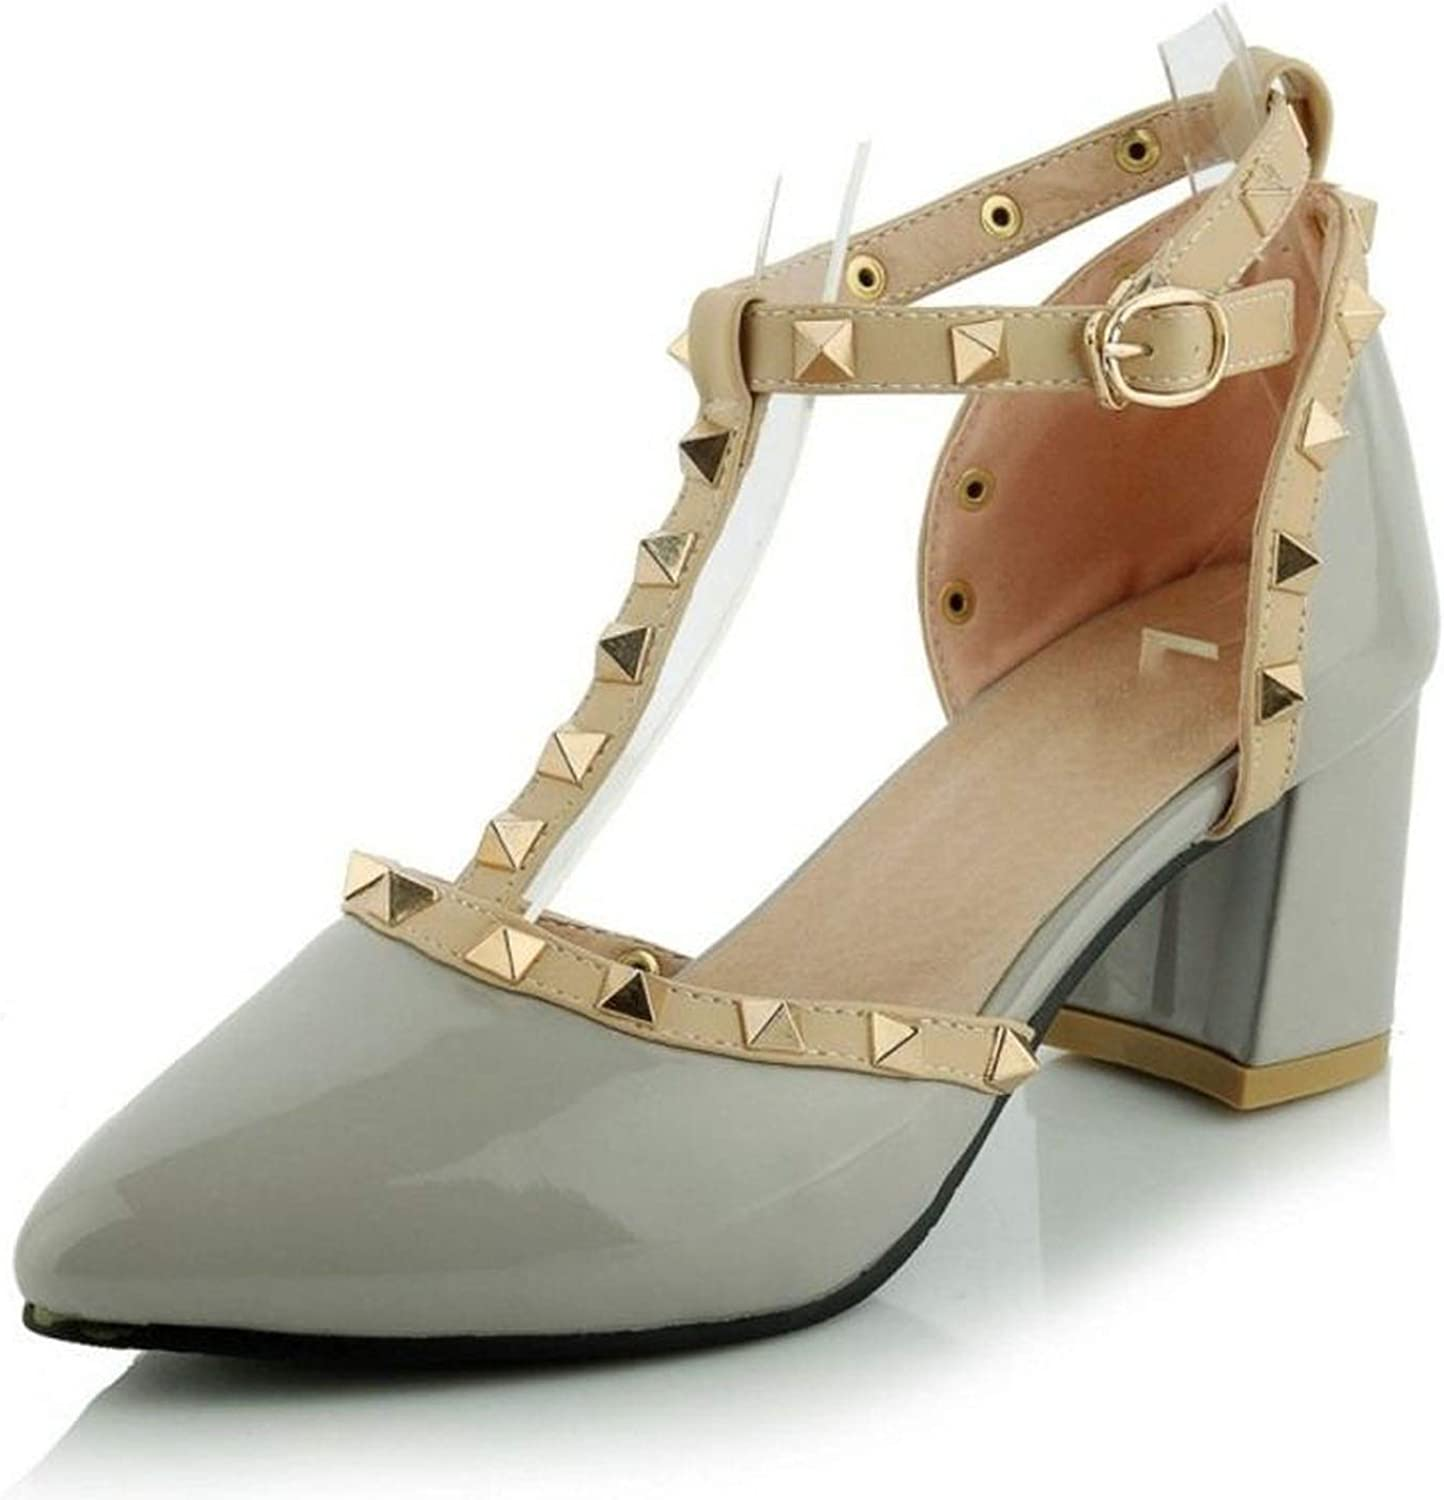 Women Middle Heels shoes Women Square Heel Sandals Ankle Wrapped Pointed Toe Rivets Quality Casual shoes Size 31-44